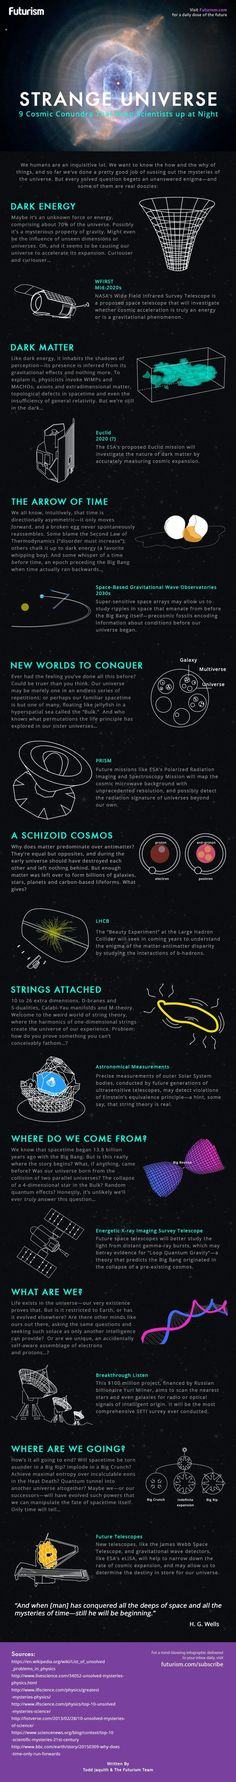 From dark energy and string theory to the end of the Universe, these are the unanswered cosmic conundra that are still baffling scientists.